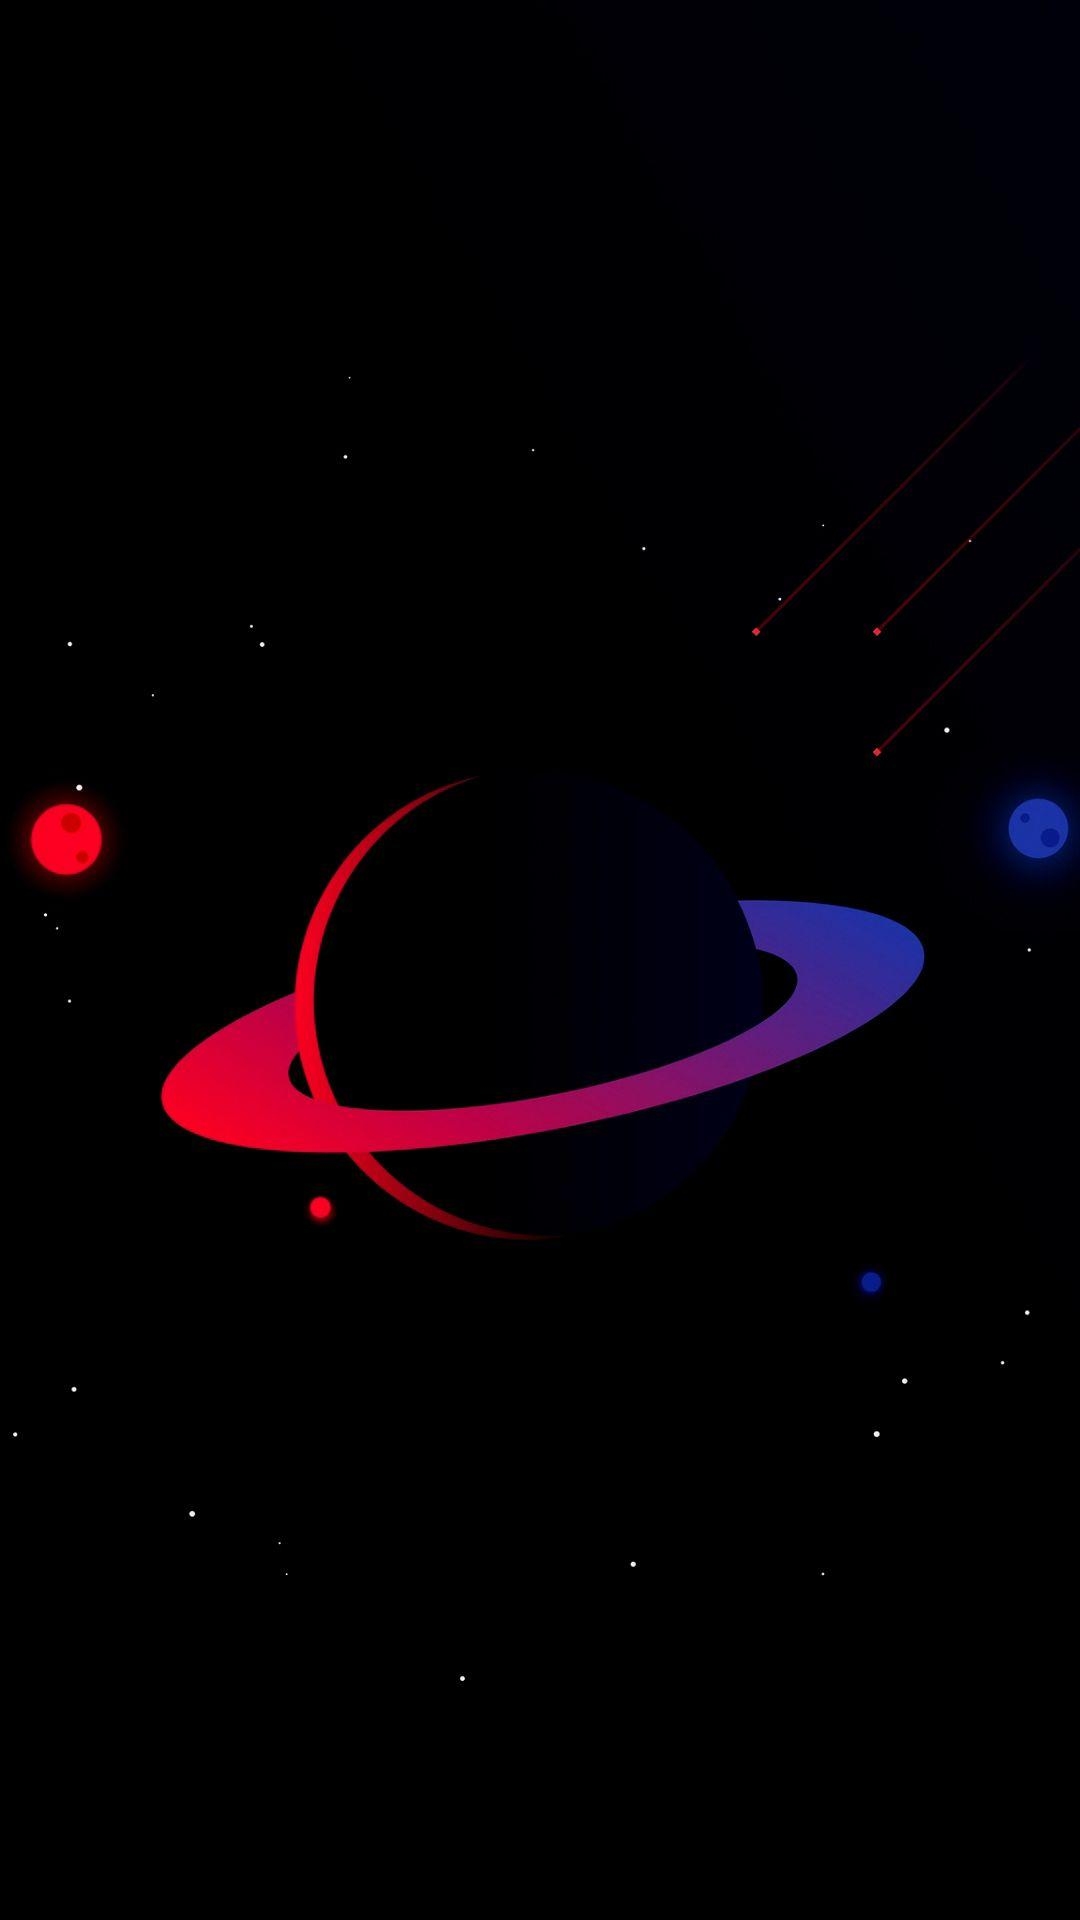 Space Minimalist Wallpaper : space, minimalist, wallpaper, Minimalist, Universe, Wallpapers, Wallpaper